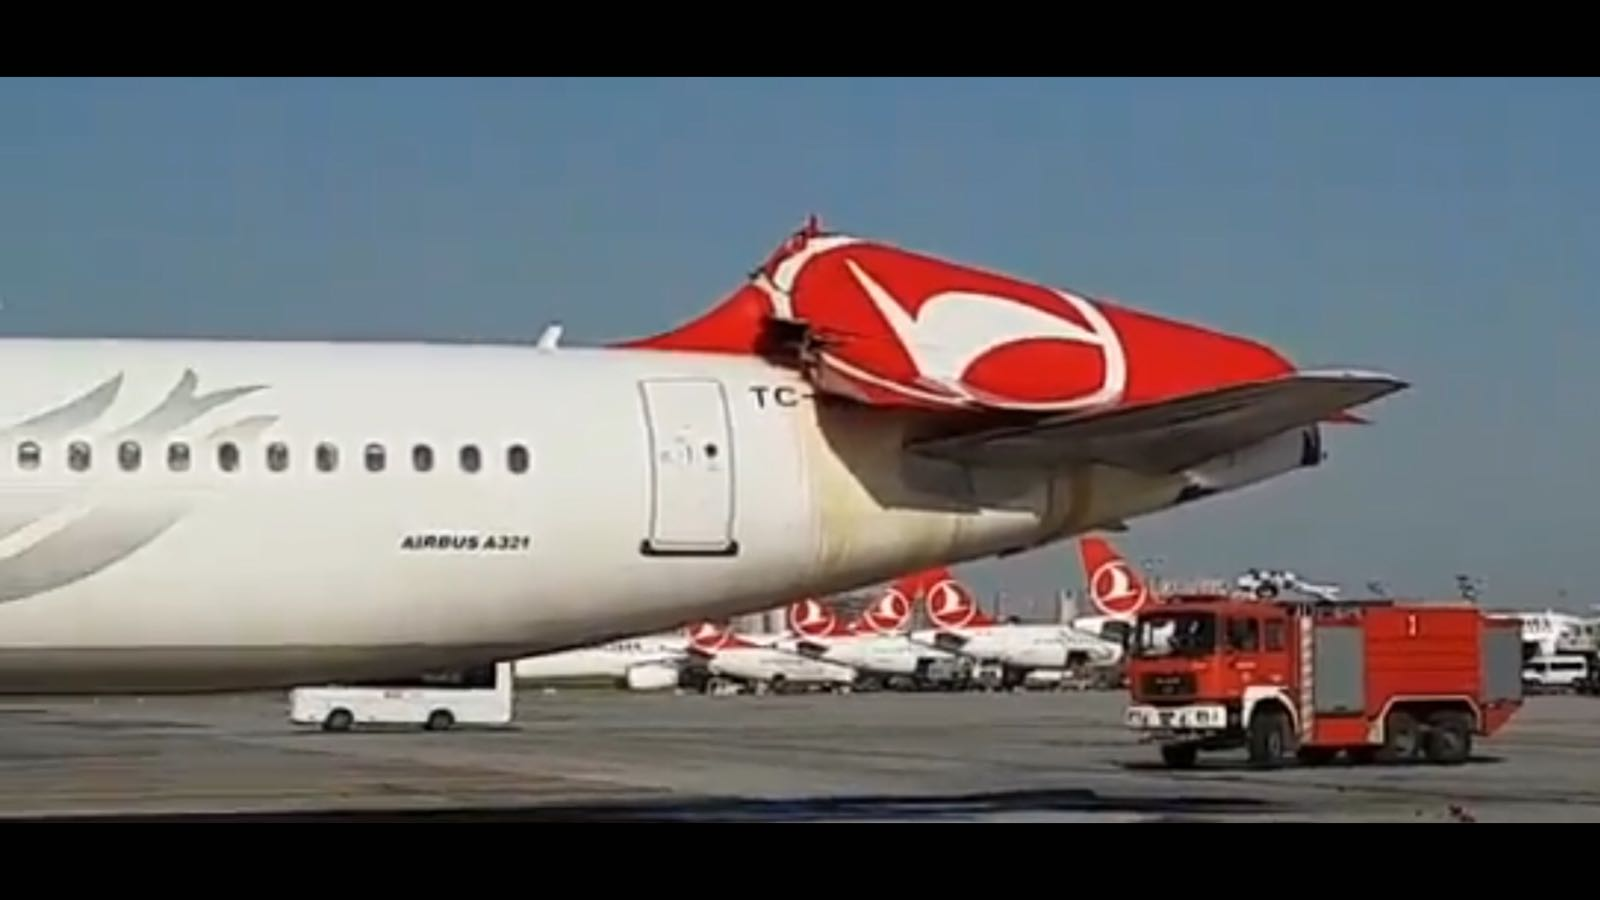 Horror moment planes collide on Istanbul Airport tarmac